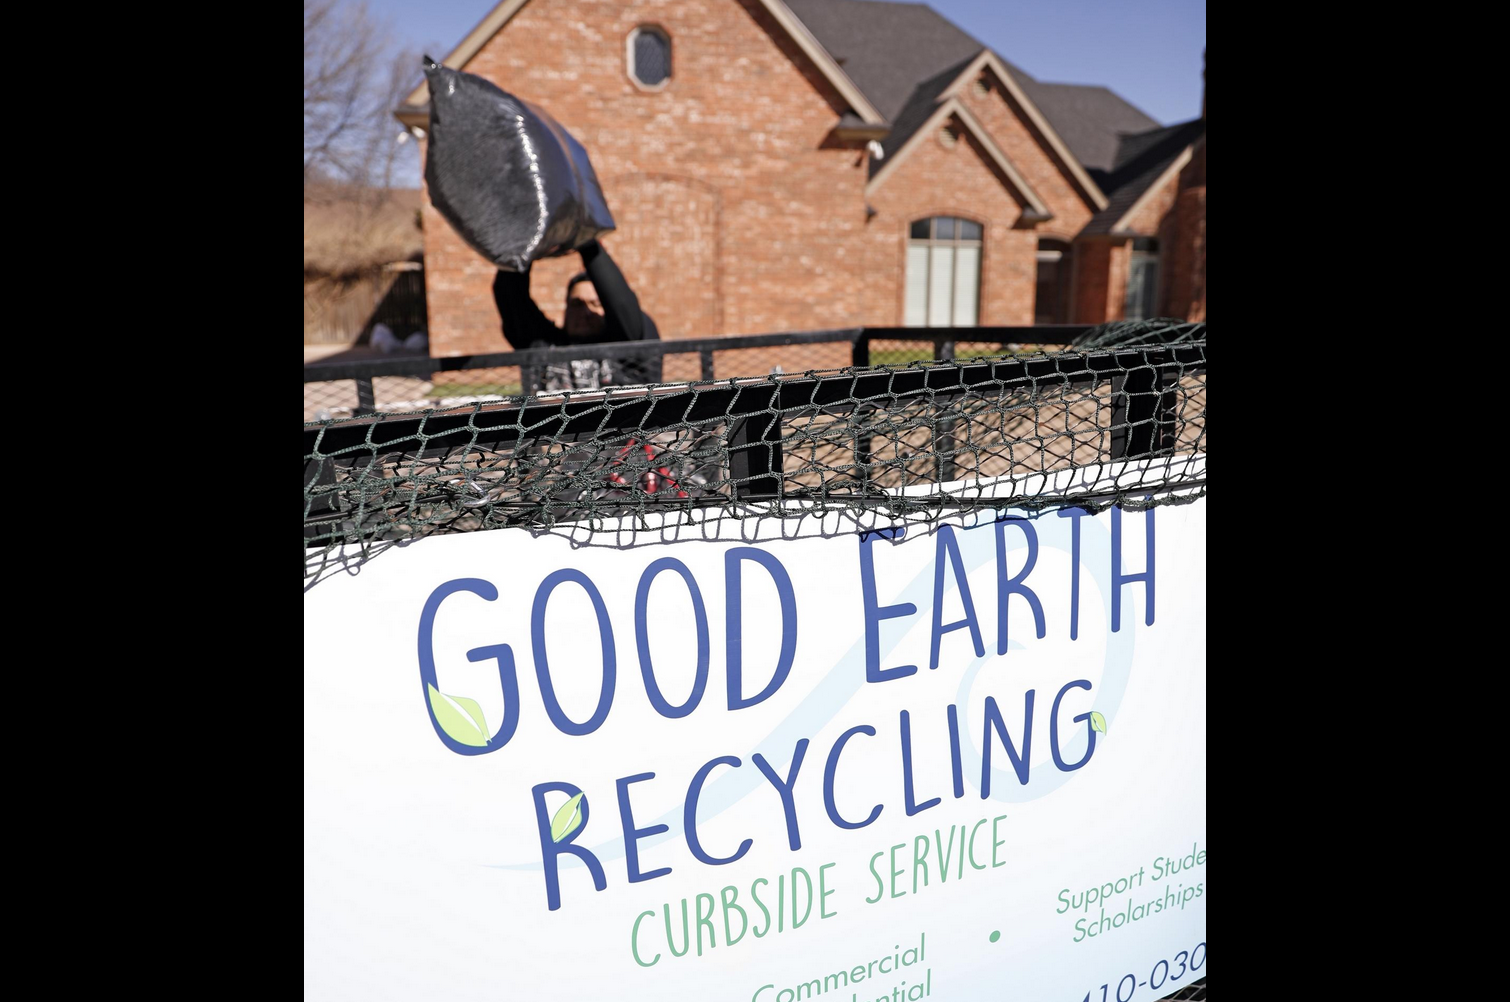 Good-Earth-Recycling-News.png